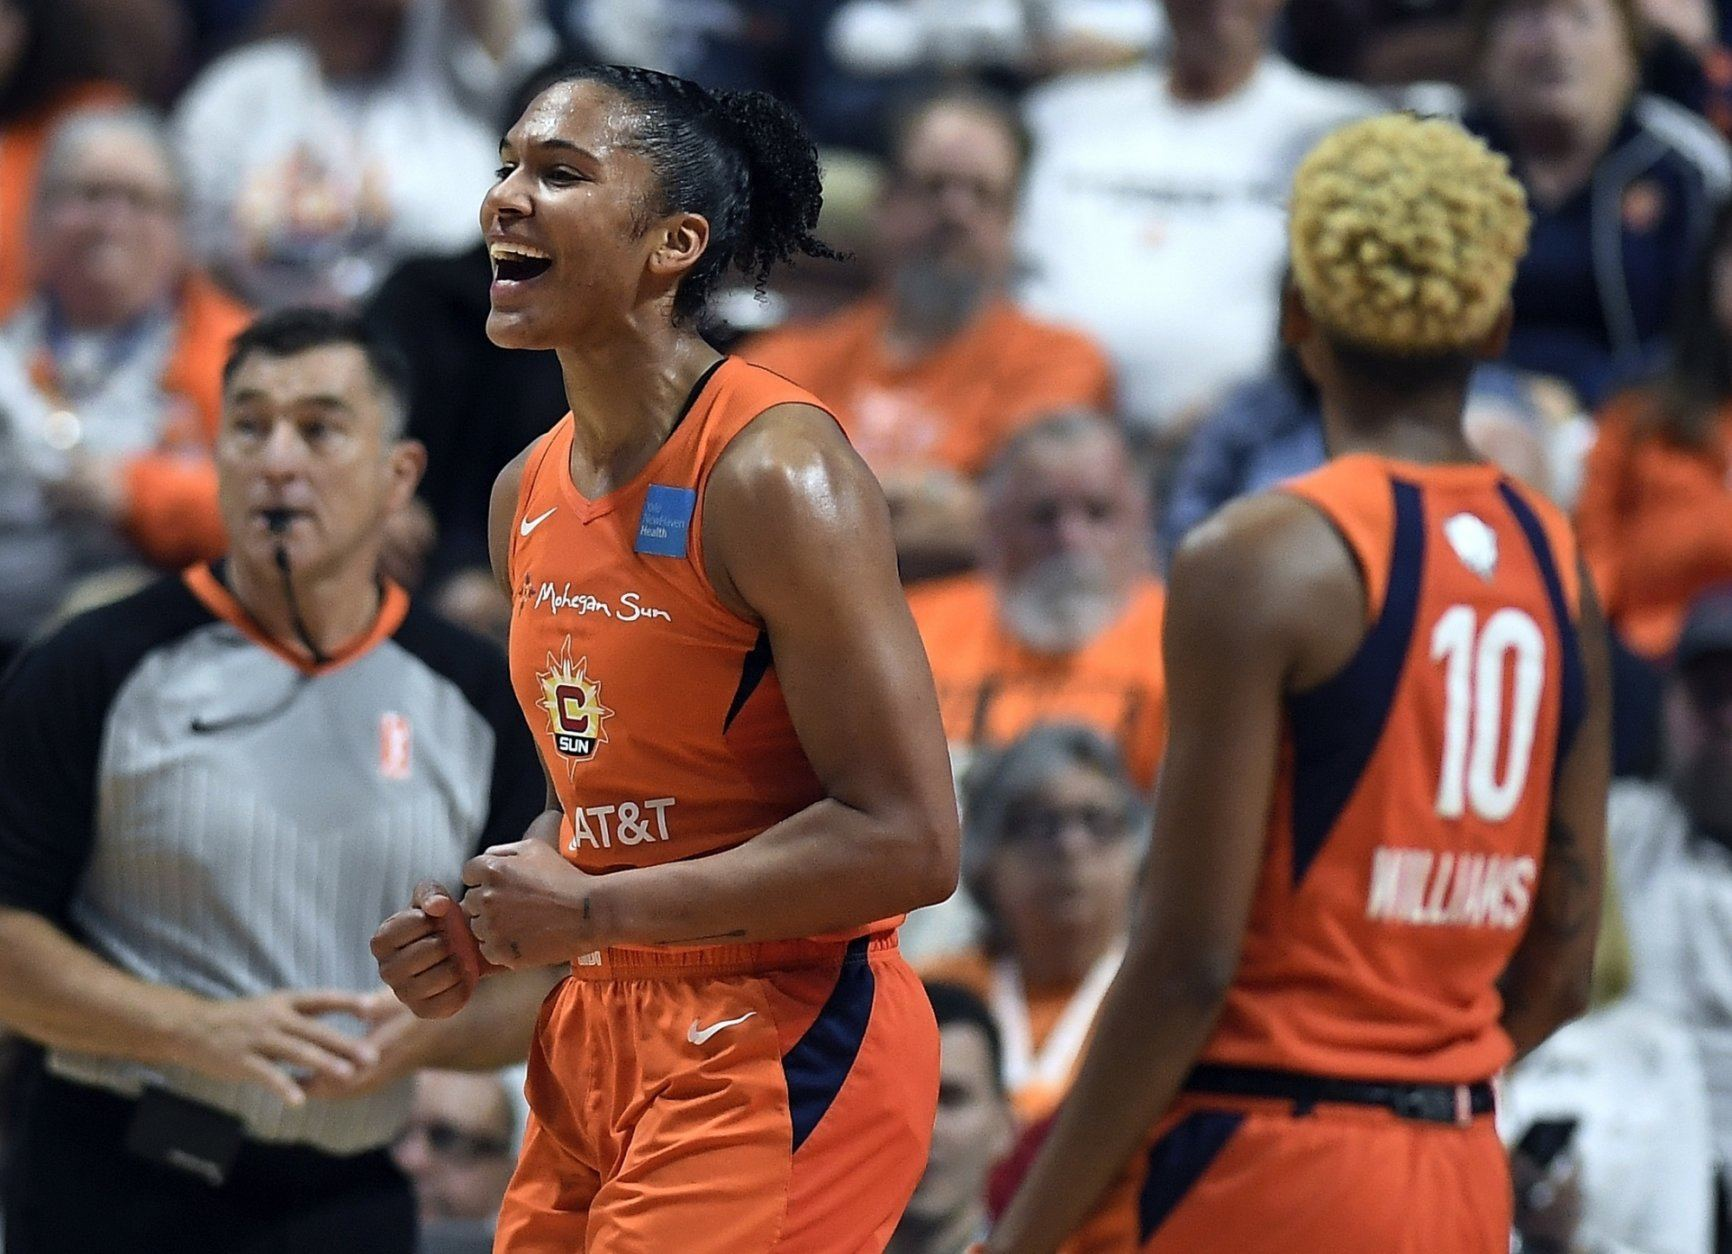 Connecticut Sun's Alyssa Thomas reacts to a play during the first half in Game 4 of basketball's WNBA Finals against the Washington Mystics, Tuesday, Oct. 8, 2019, in Uncasville, Conn. (AP Photo/Jessica Hill)